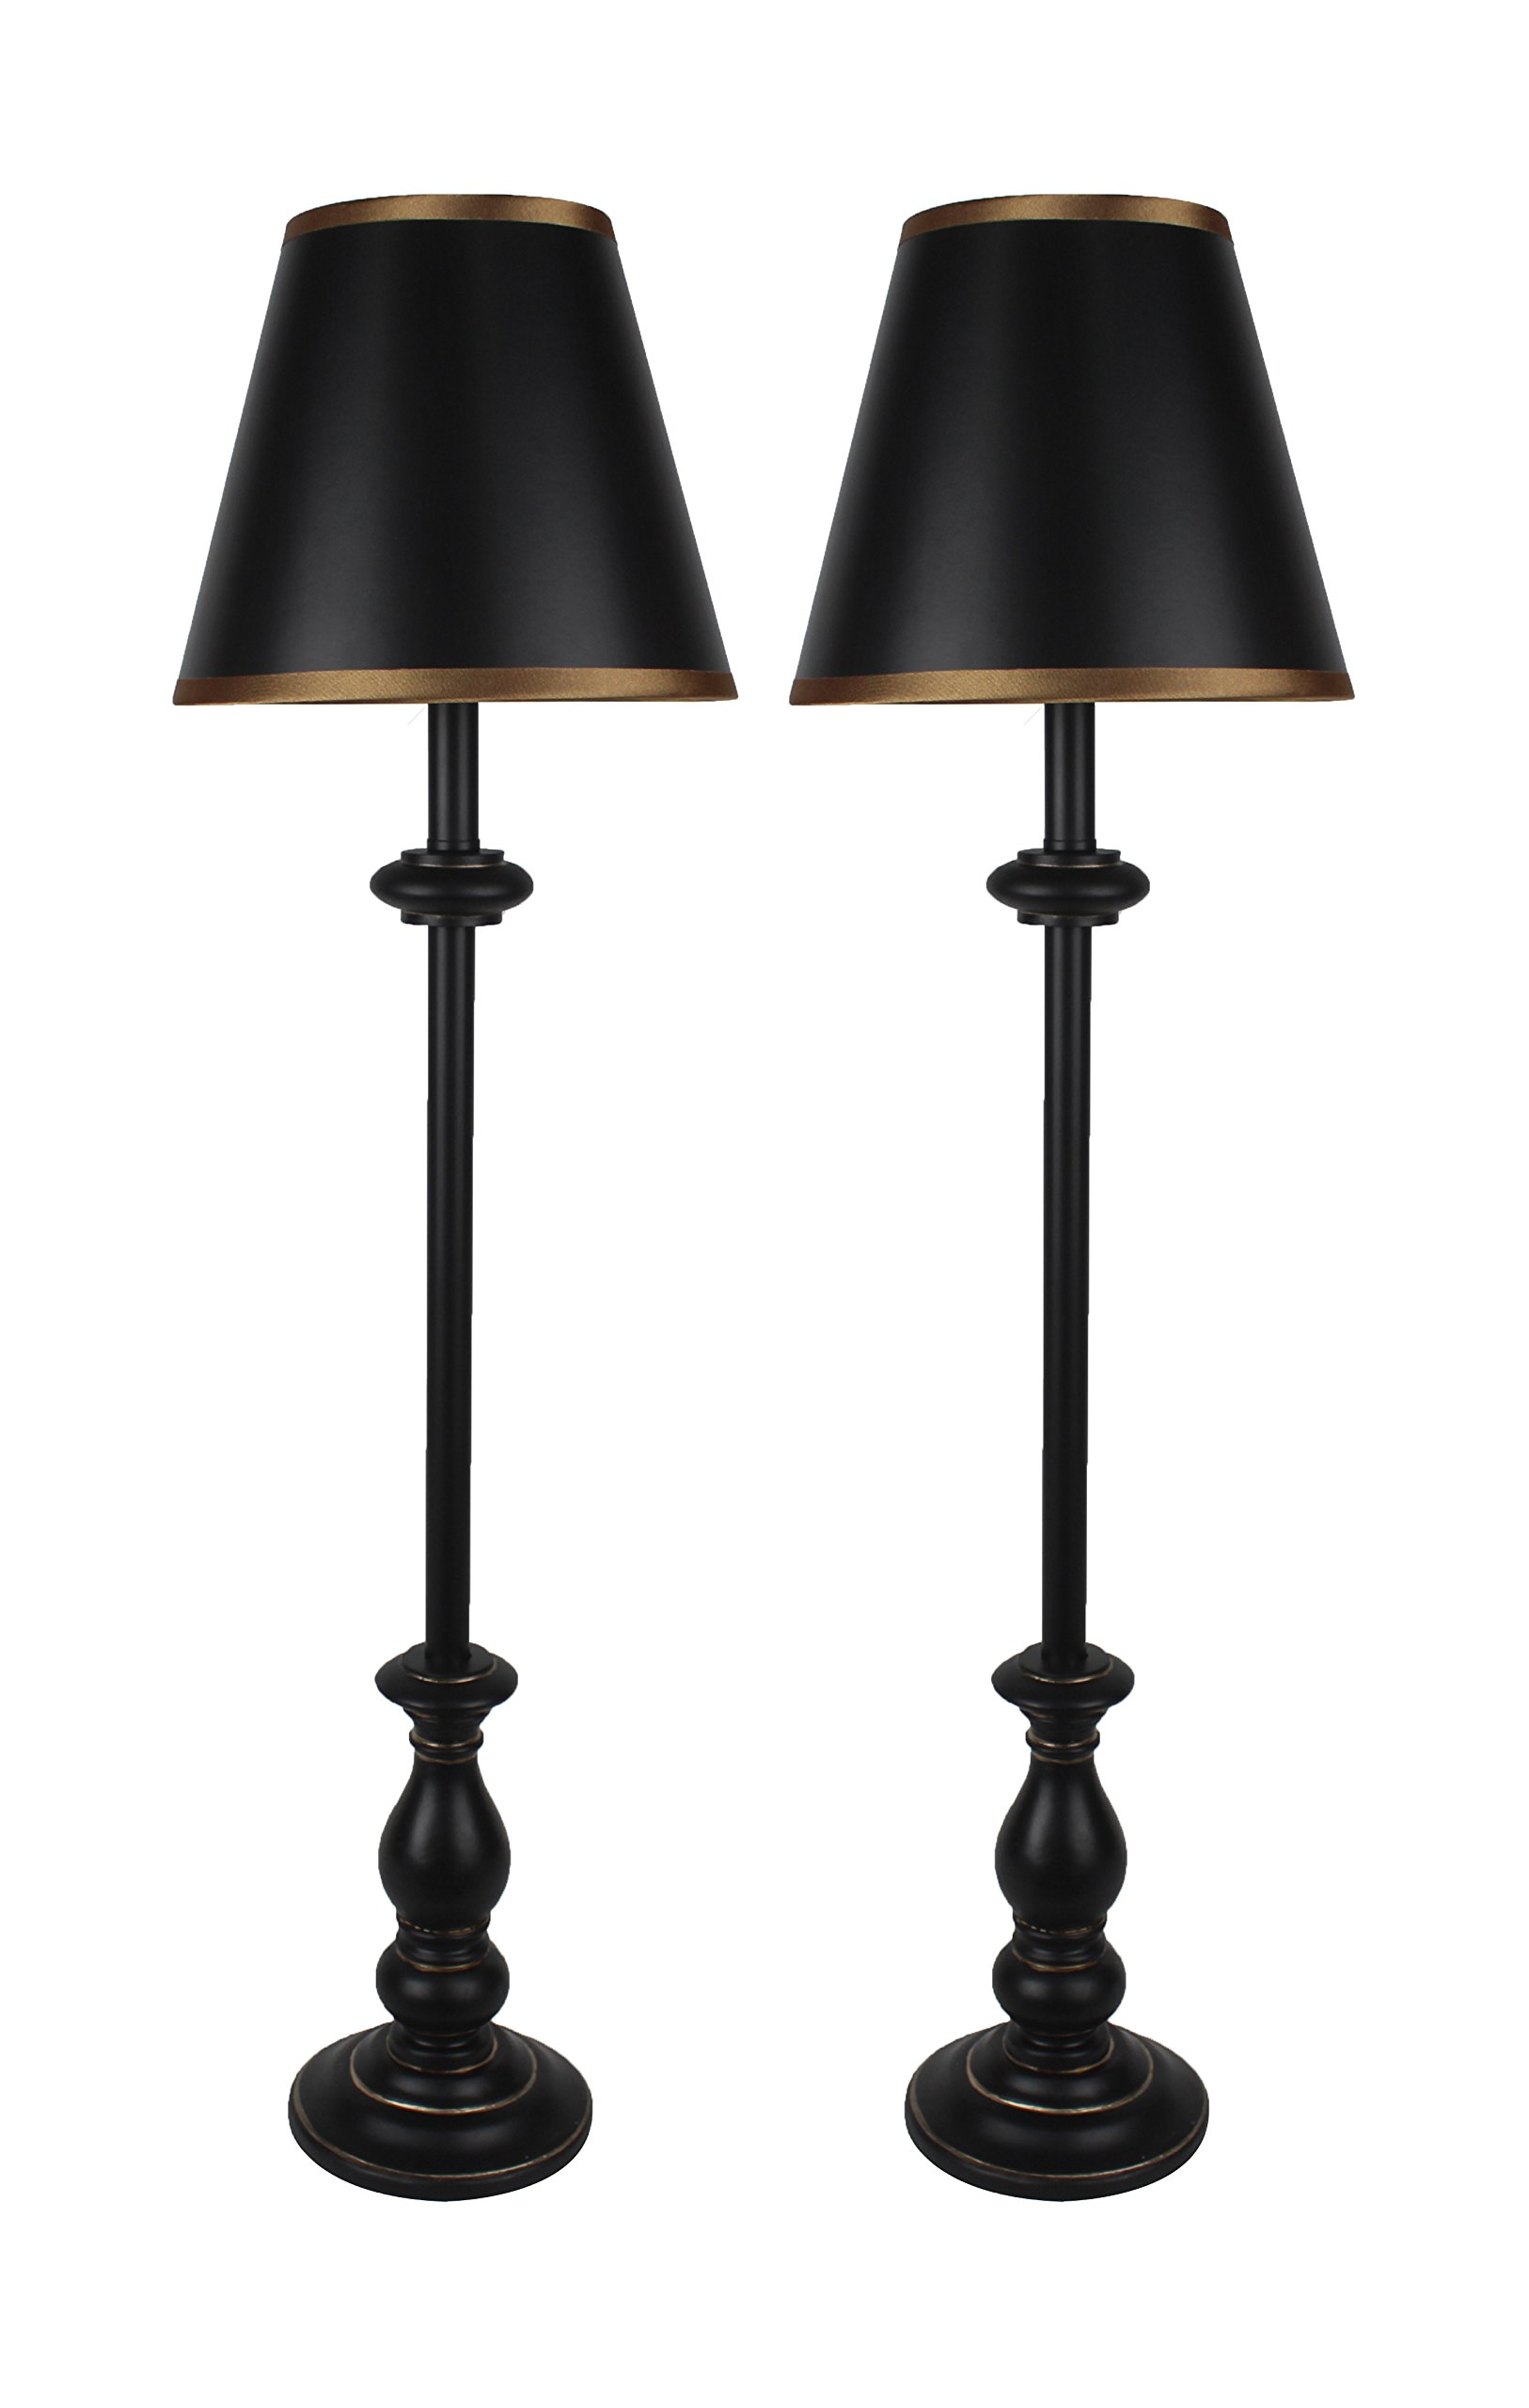 Urbanest Set of 2 Banchetto Buffet Lamps in Distressed Black with Gold Trim